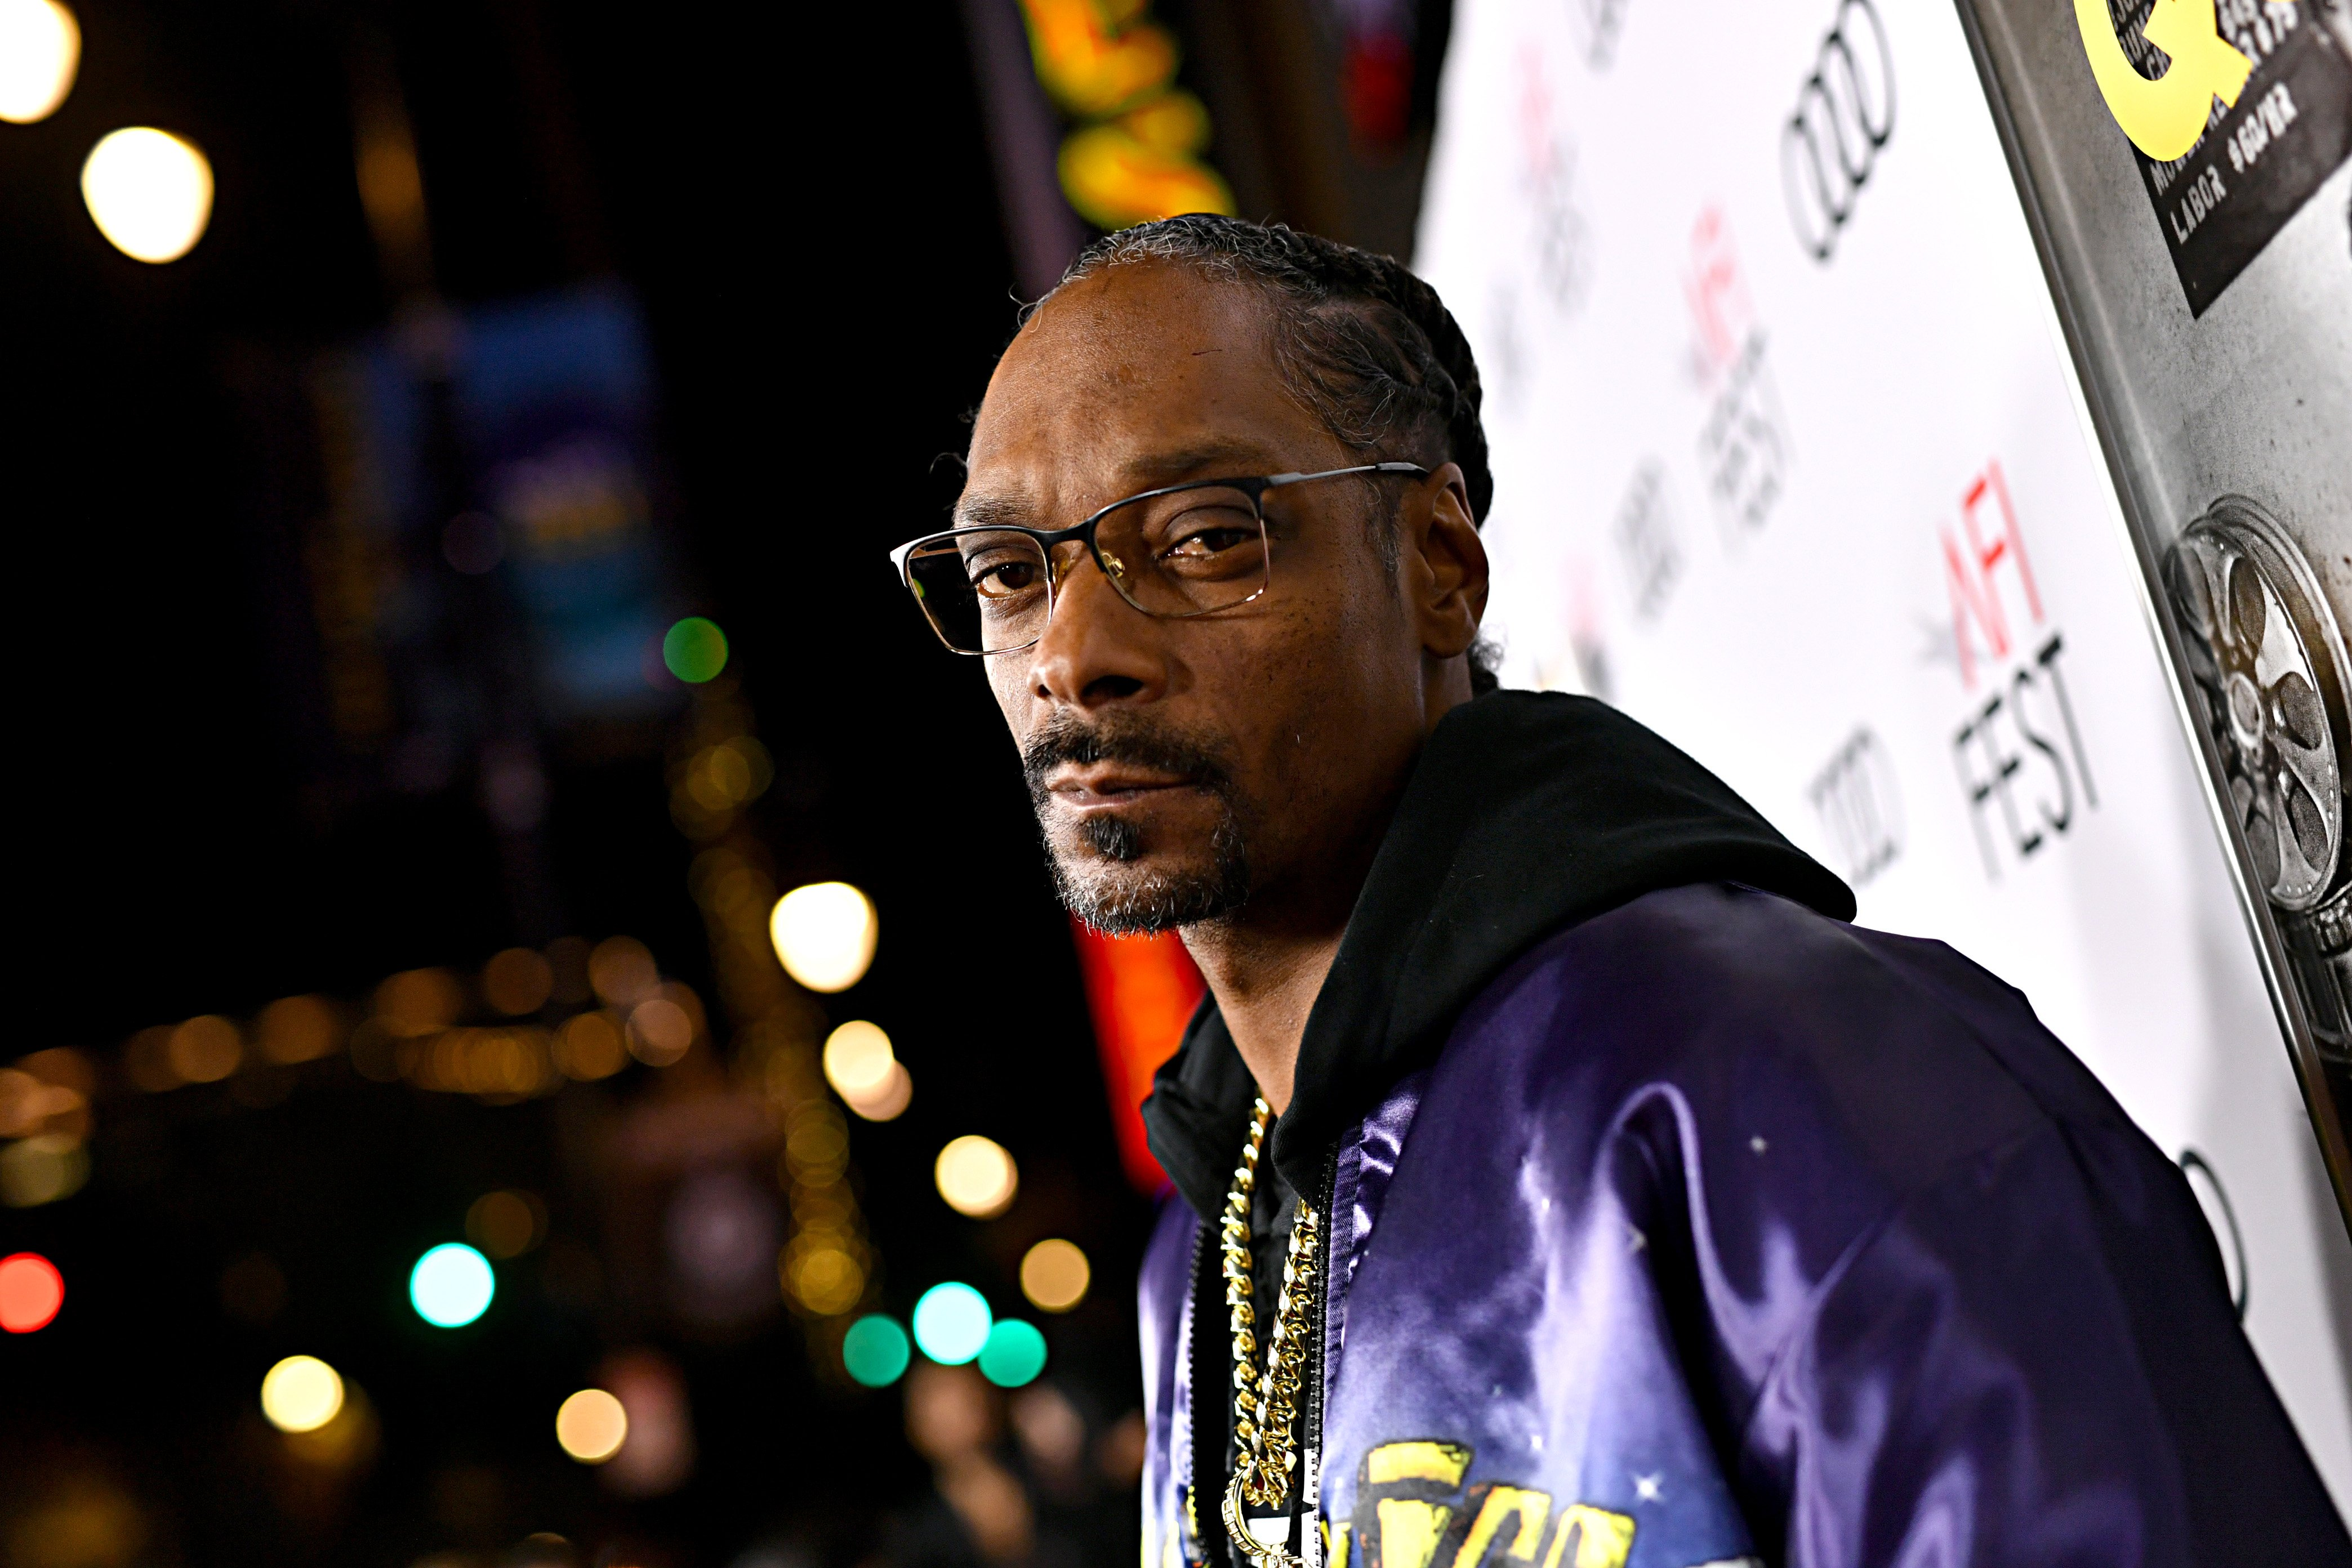 """Snoop Dogg attends the """"Queen & Slim"""" Premiere at AFI FEST 2019 on November 14, 2019 in Hollywood, California 